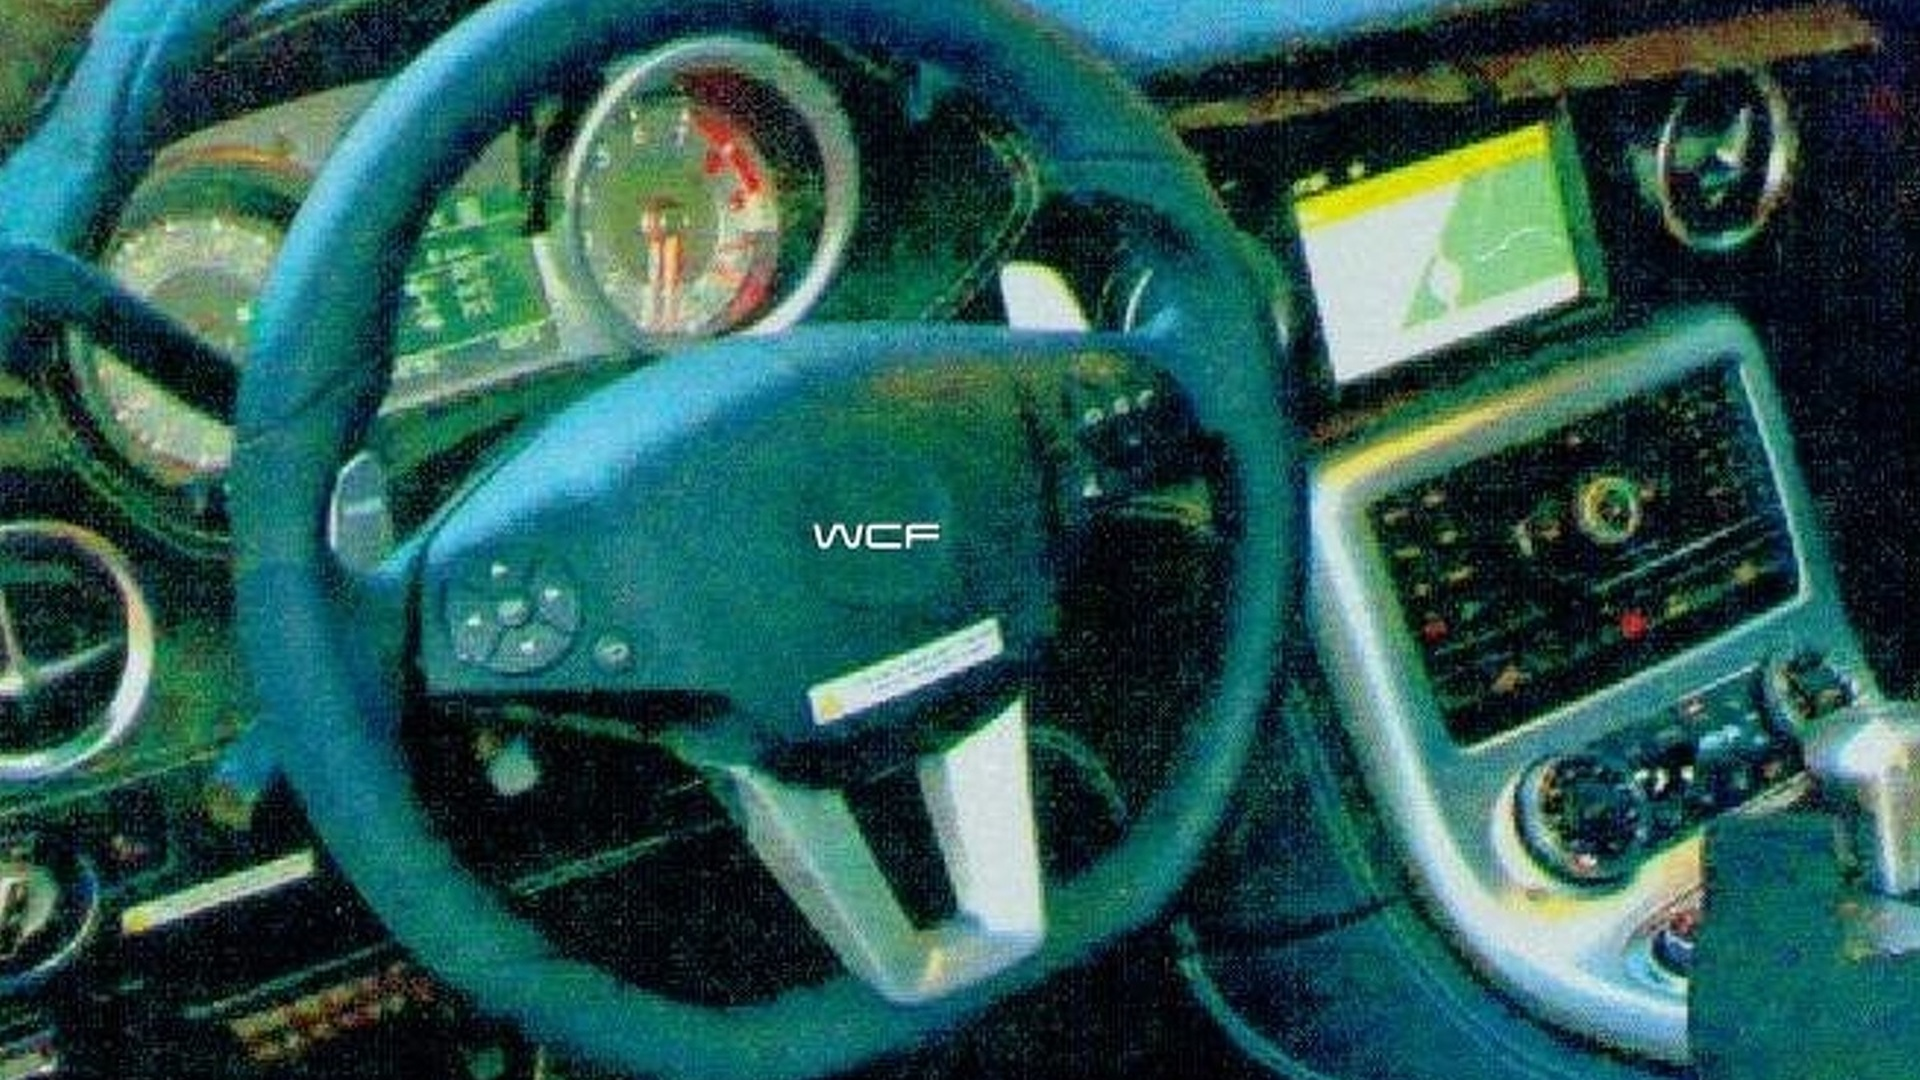 Scans of Mercedes SLC Gullwing interior surface